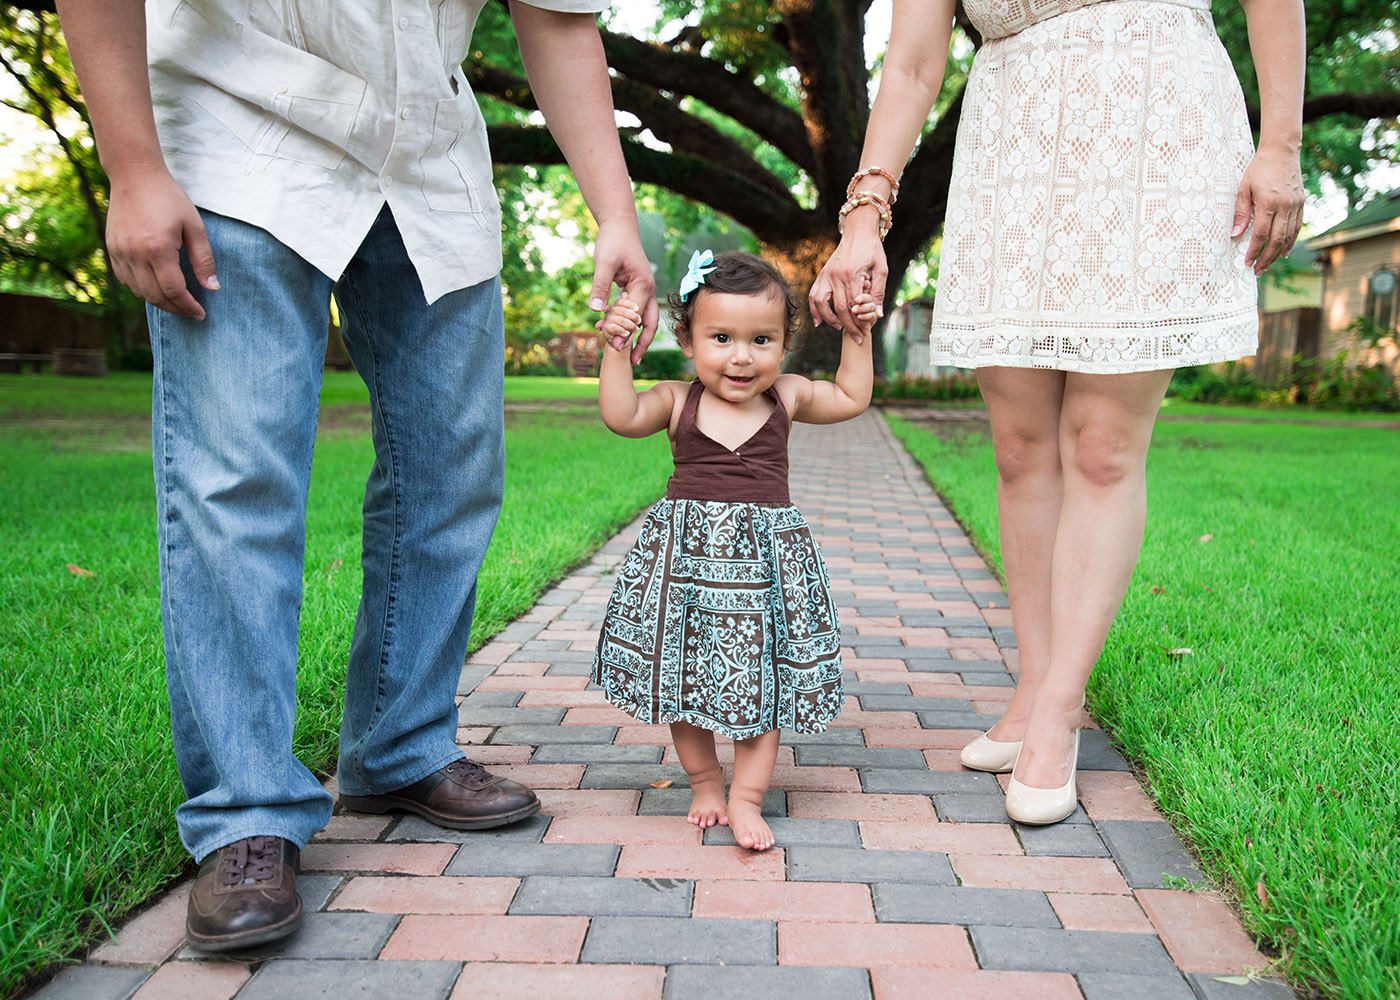 Held by her parents hand, Katalina walks her path.